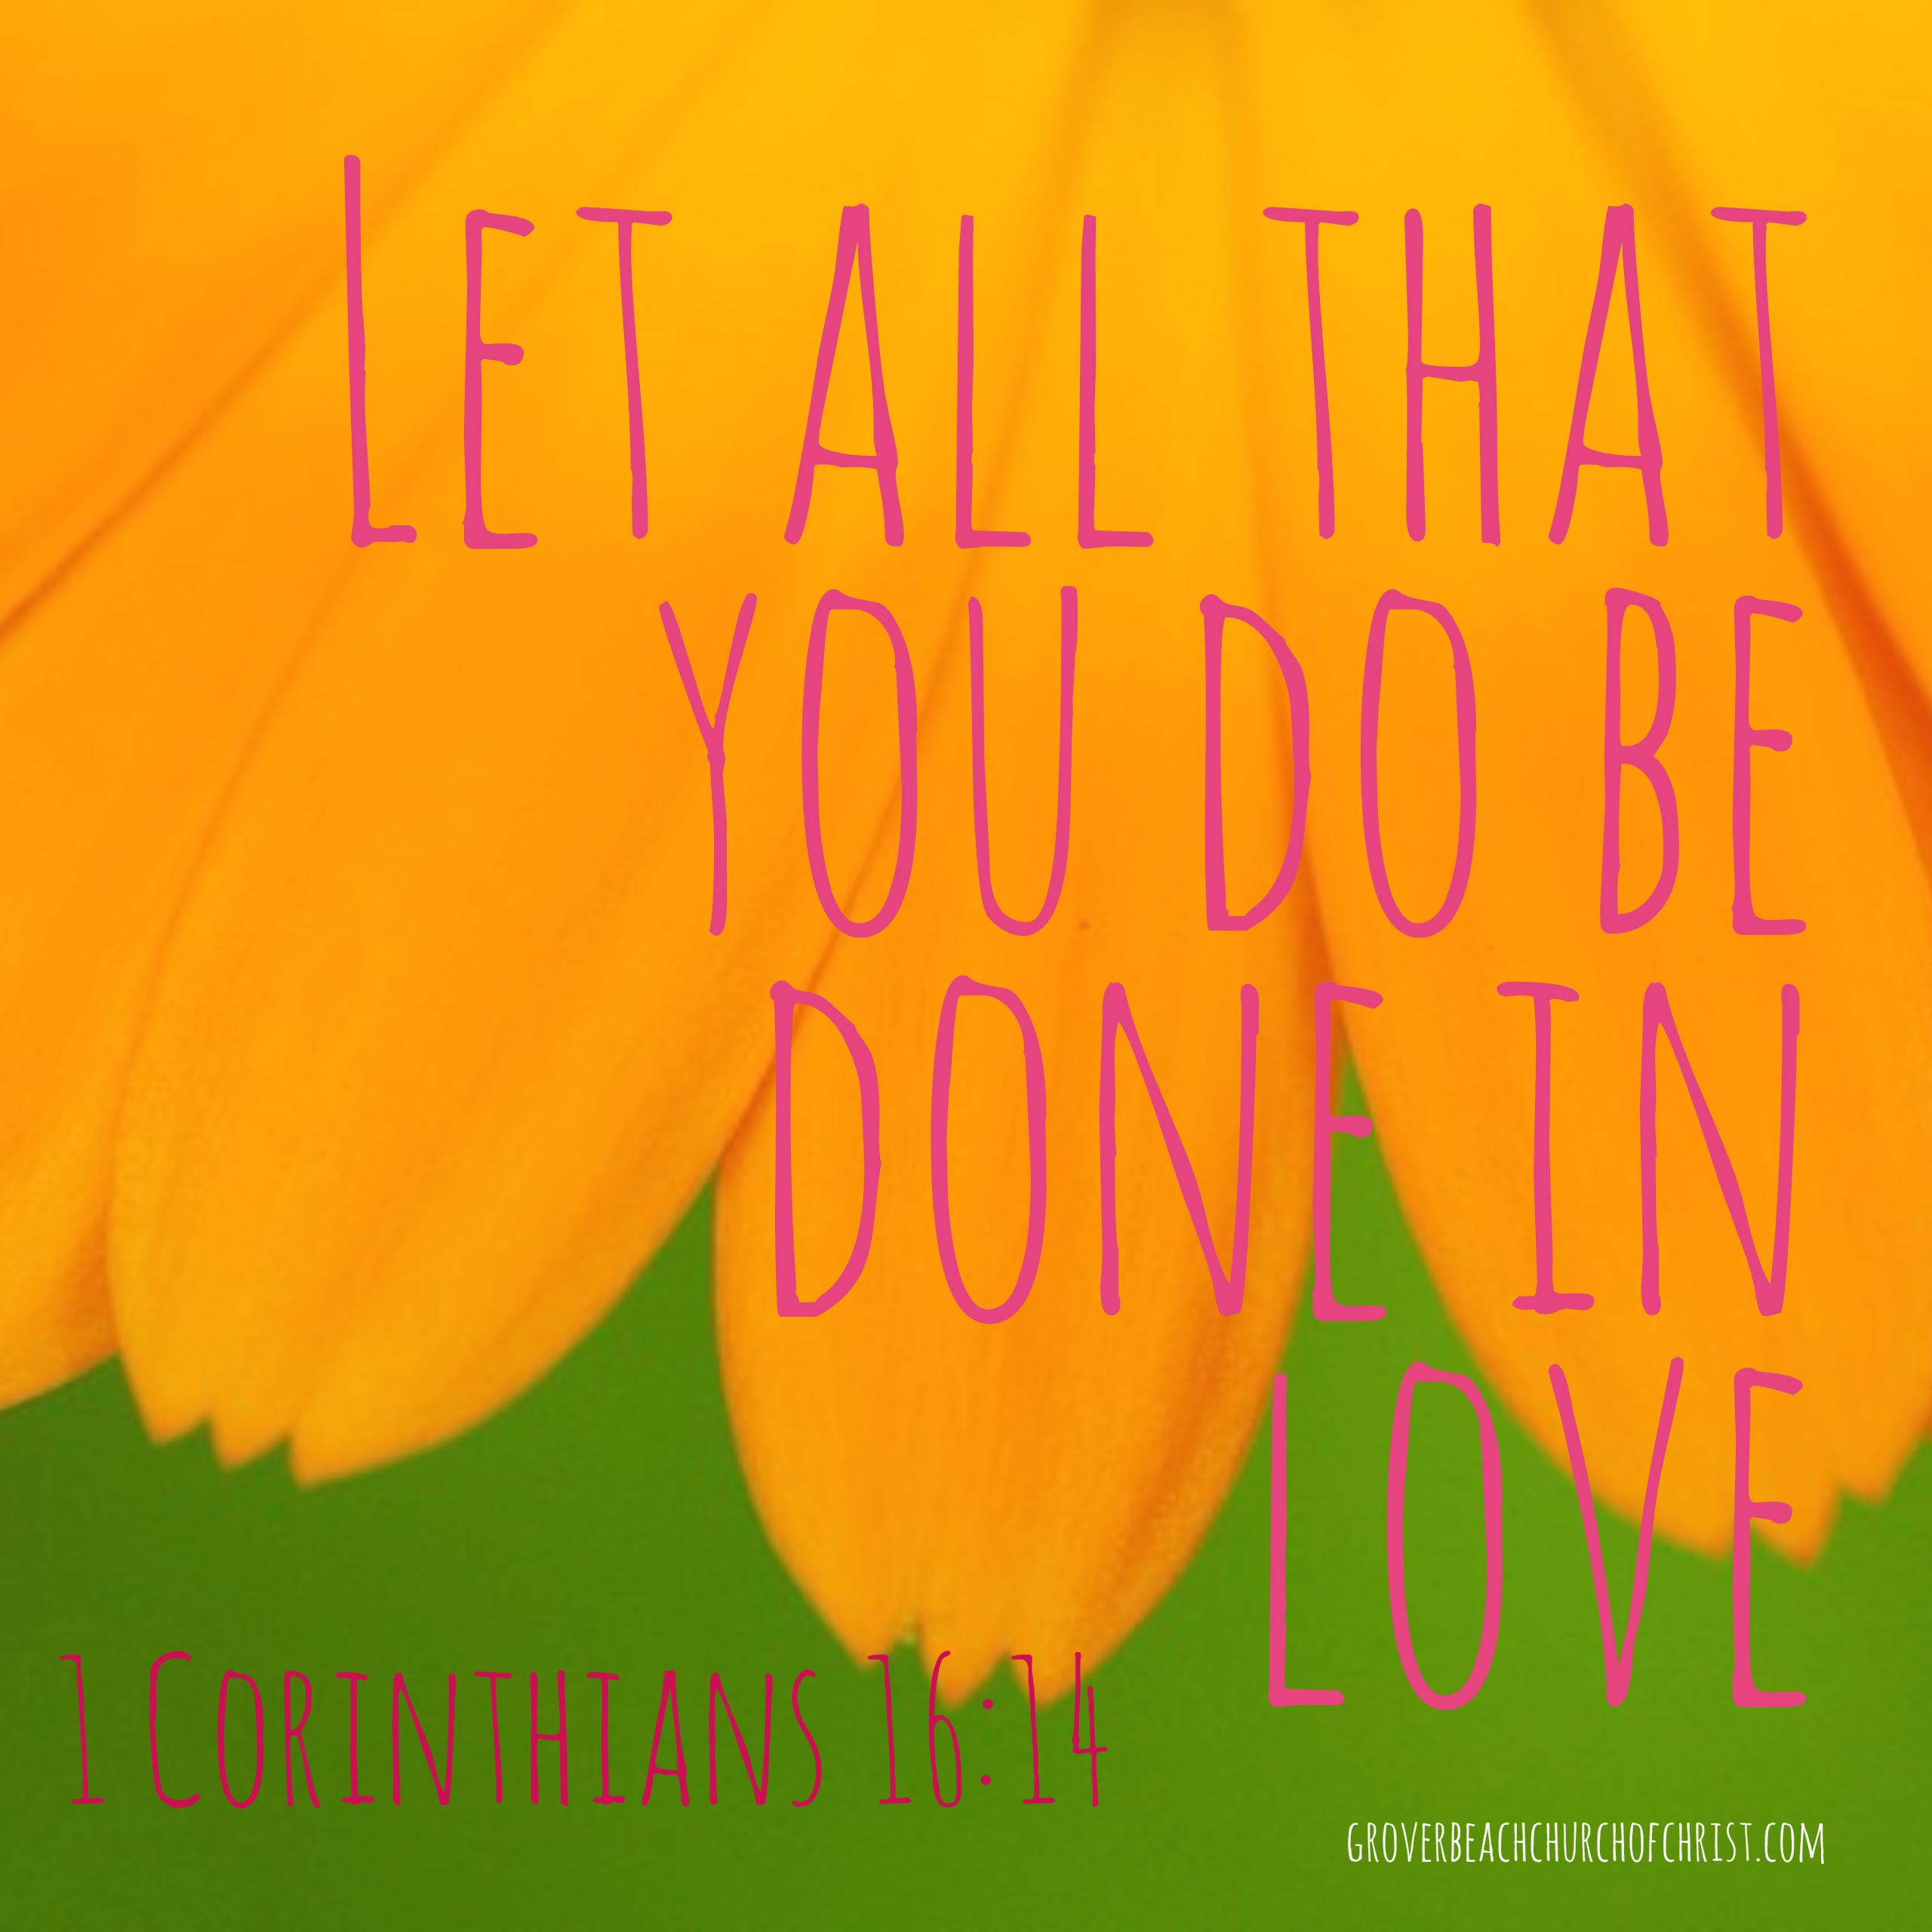 1 Corinthians 16:14 Let all that you do be